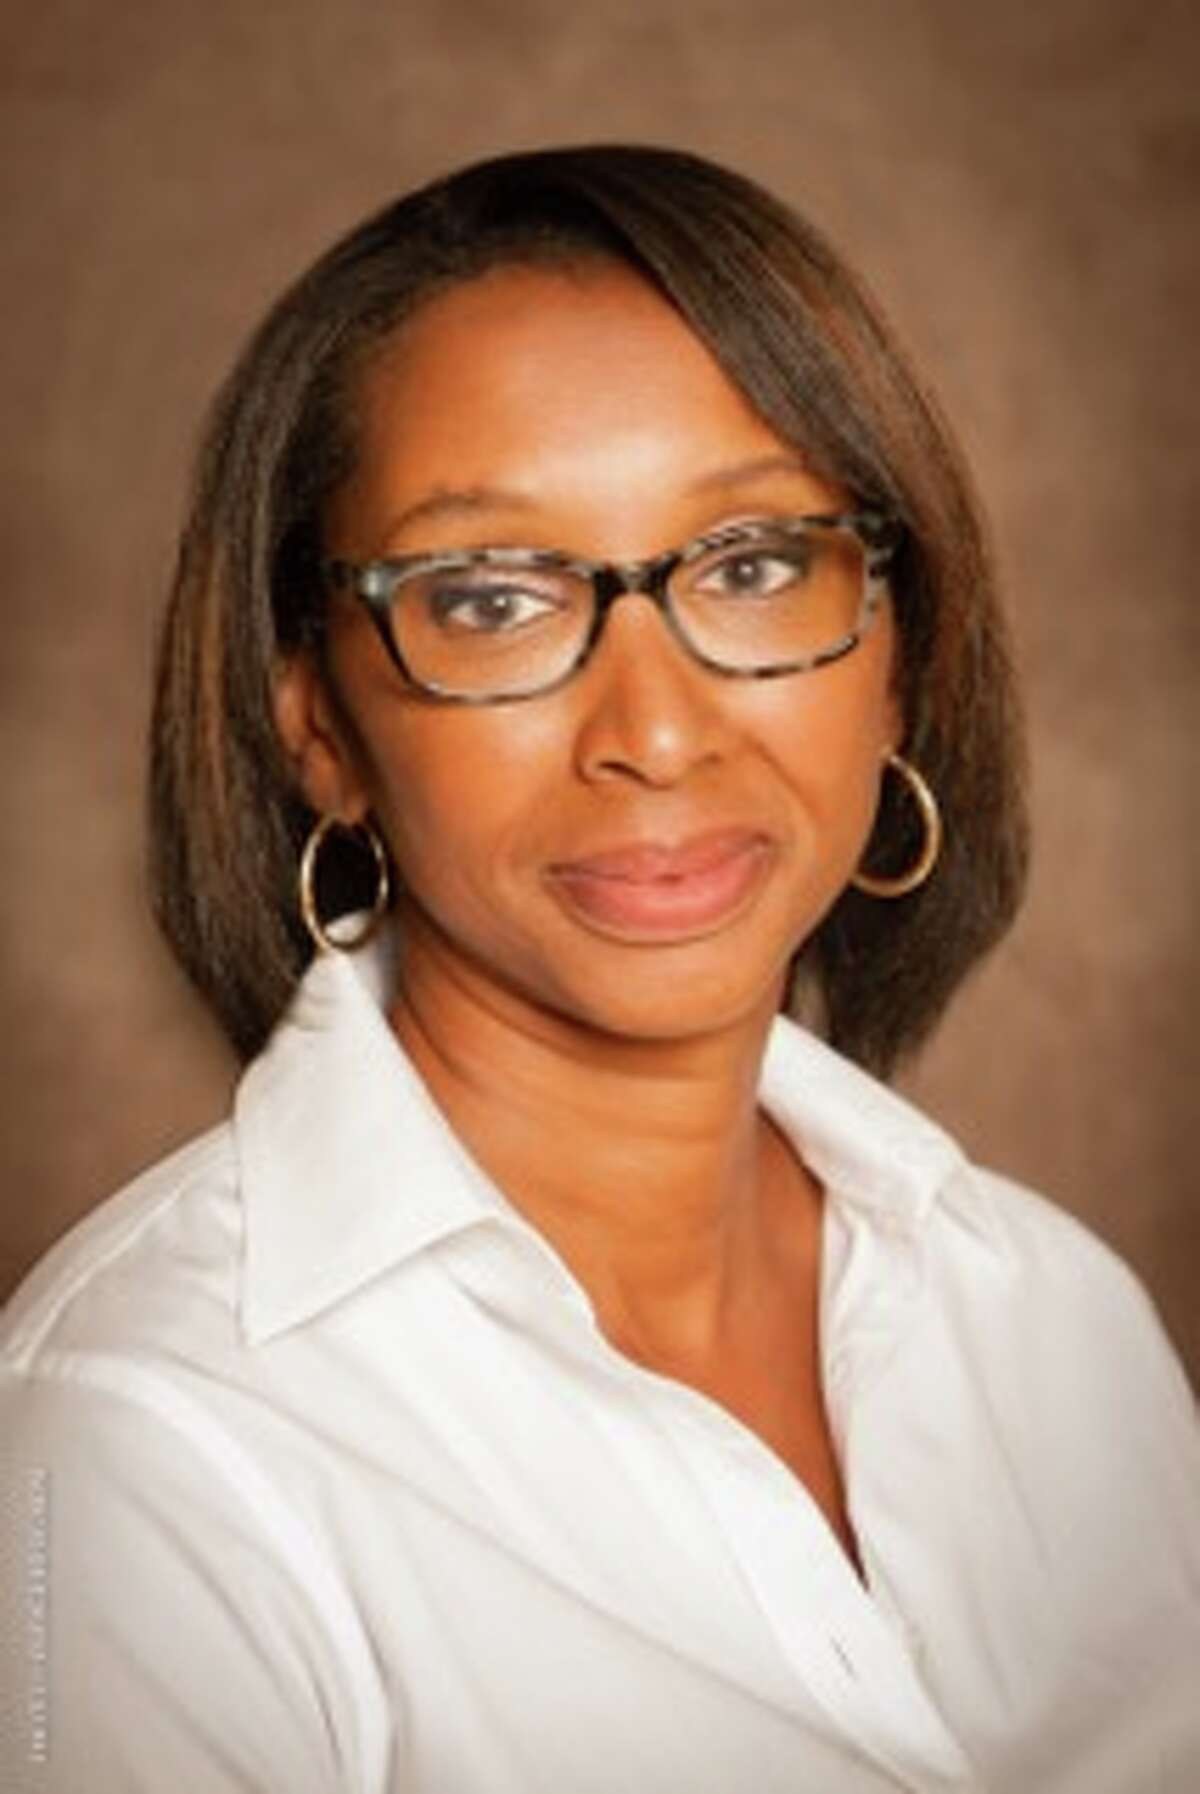 Jennienne Burke was appointed to the Board of Education to replace Dolores Burgess, who resigned last month after moving out of Stamford.